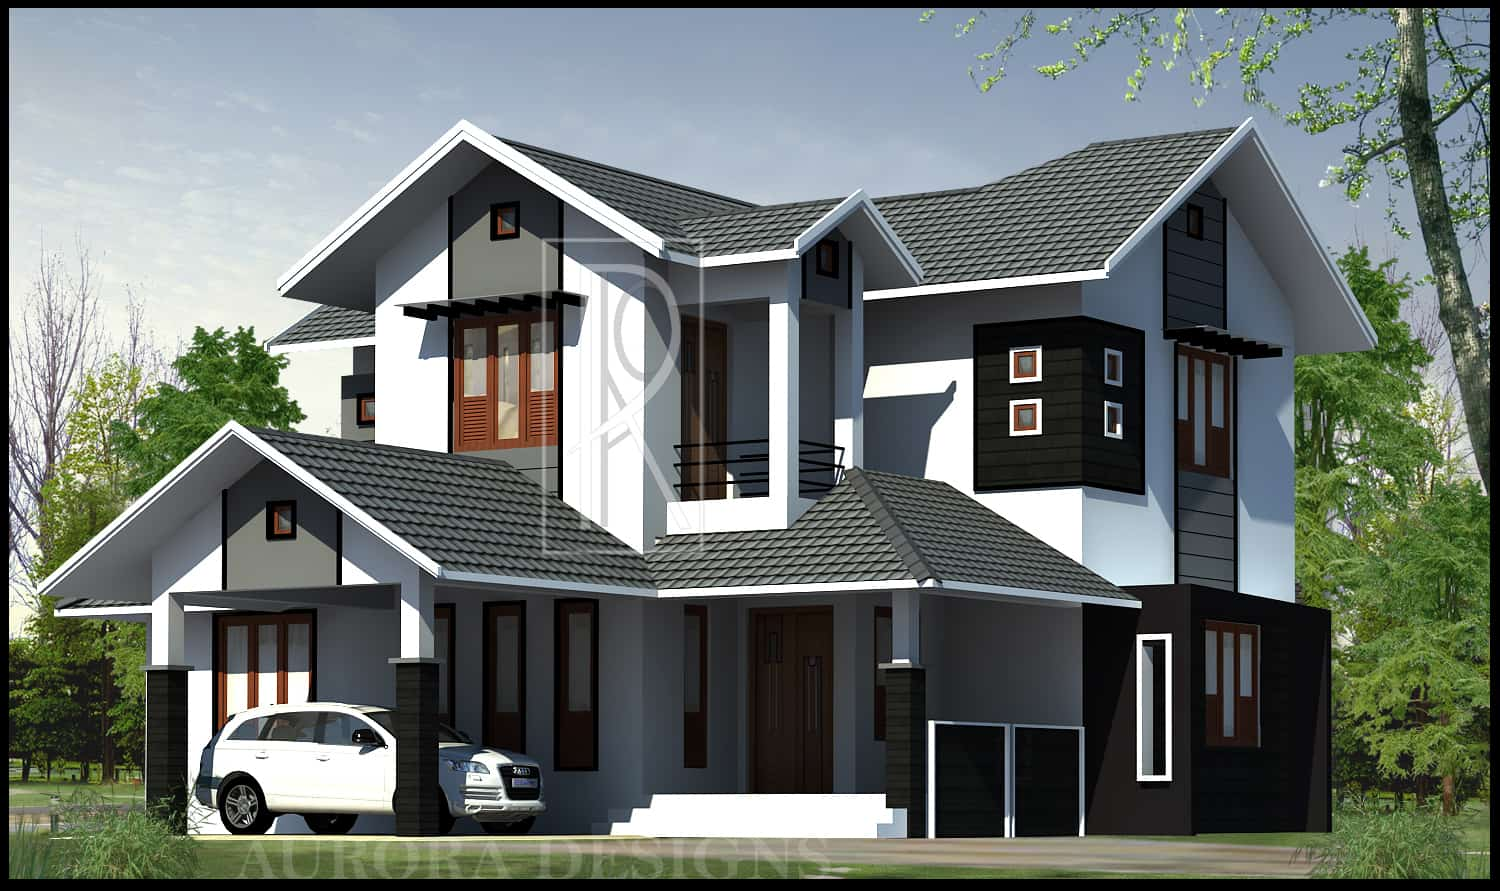 3 bedroom kerala home design at 1873 for Kerala home designs com